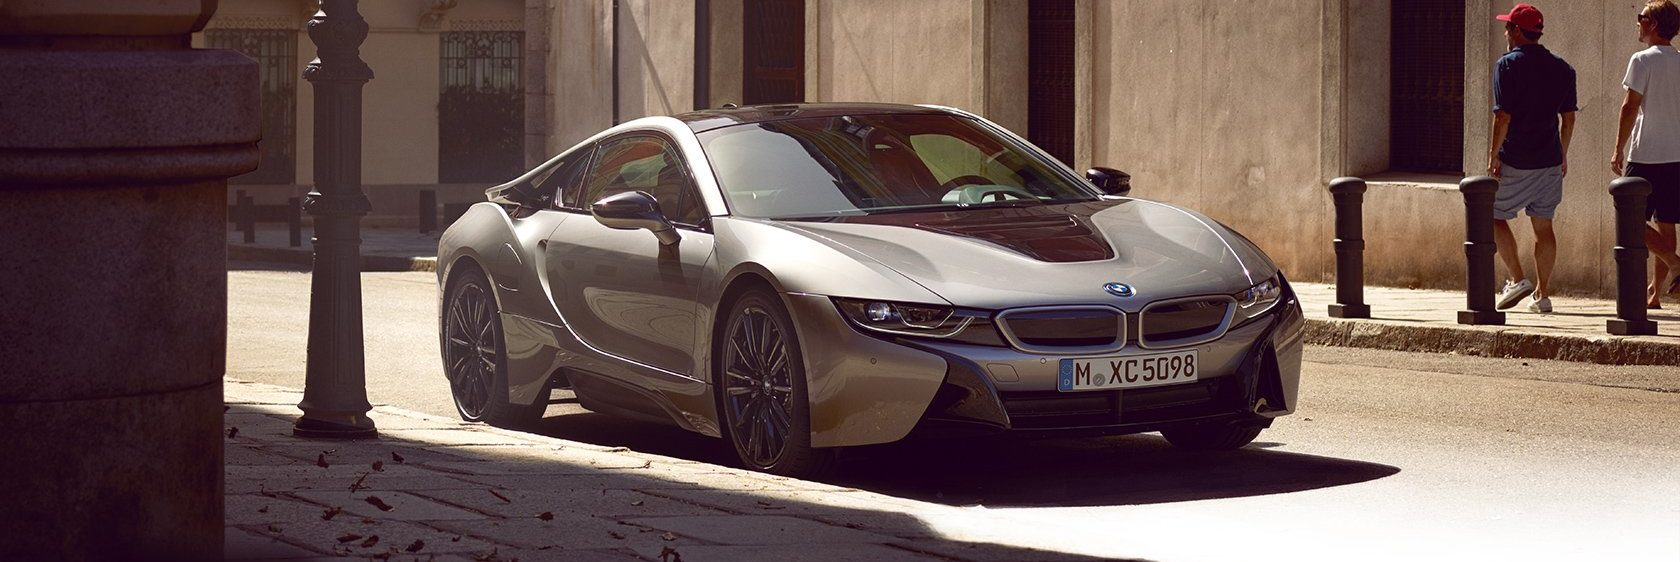 BMW i8 Coupe parked in an urban downtown area